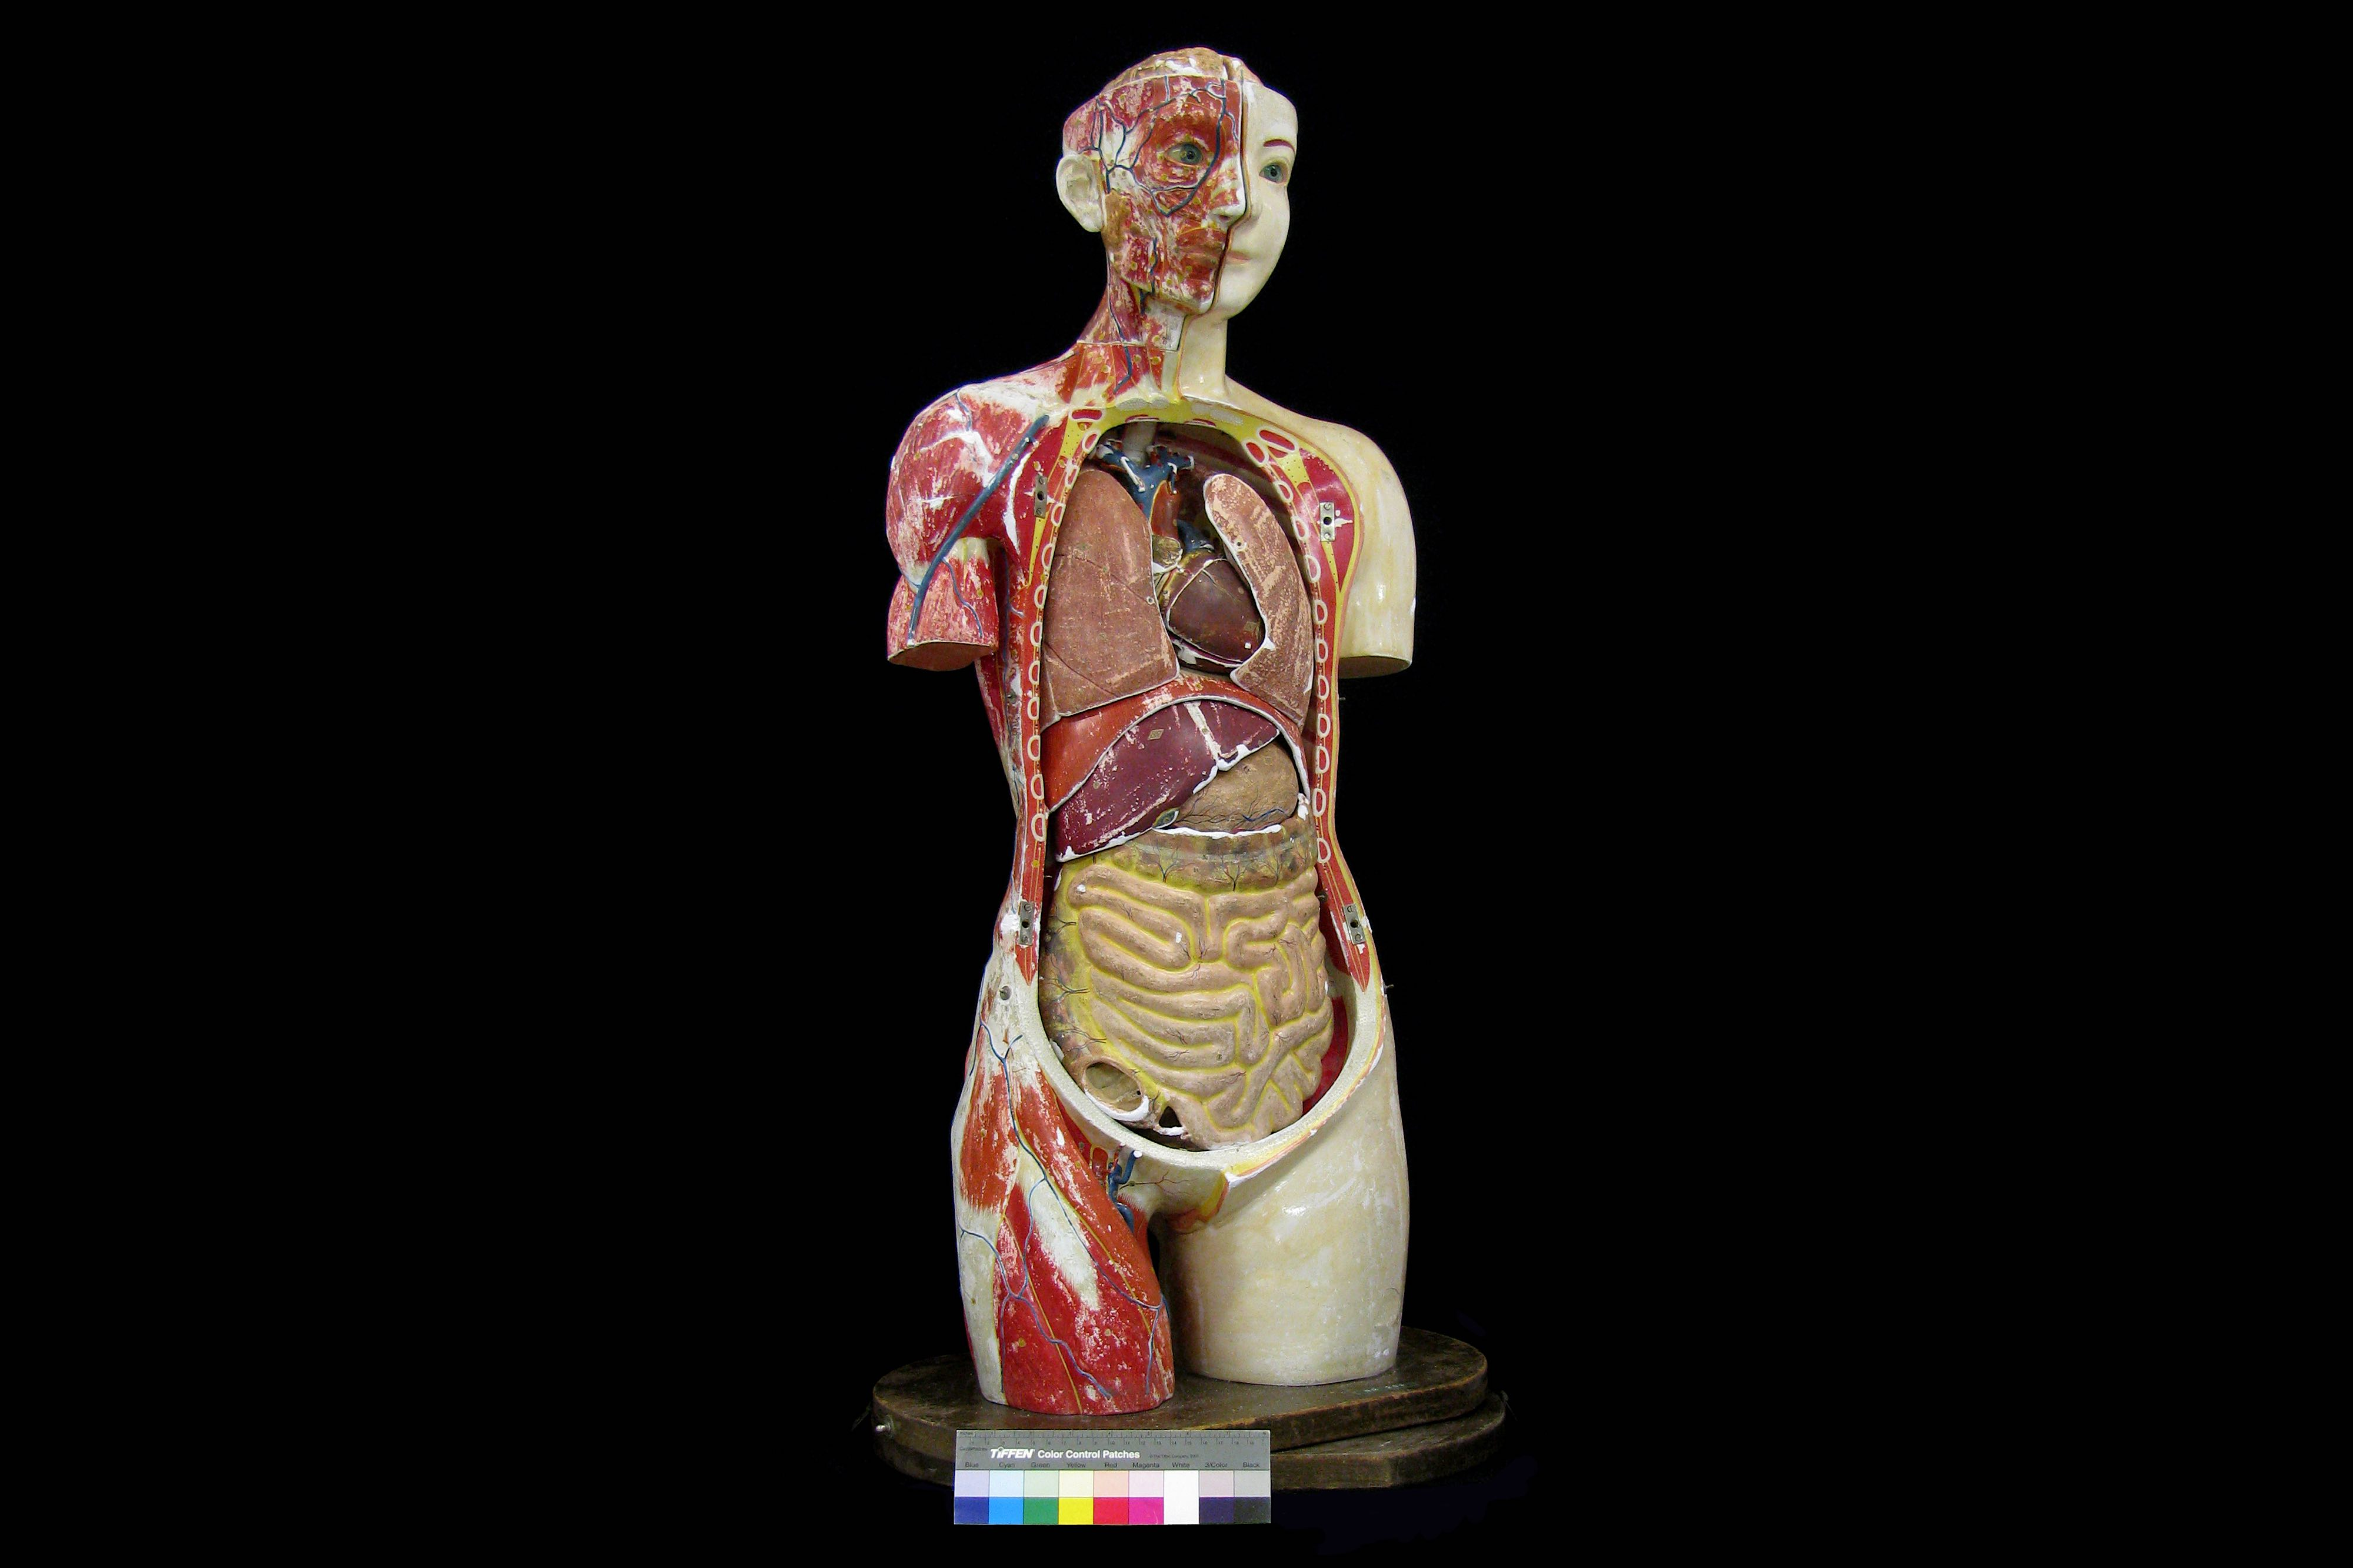 A FINE 1930'S JAPANESE LIFE-SIZE ANATOMICAL MODEL TORSO OF THE FEMALE FIGURE PRODUCED IN 1934 BY THE - Image 8 of 9